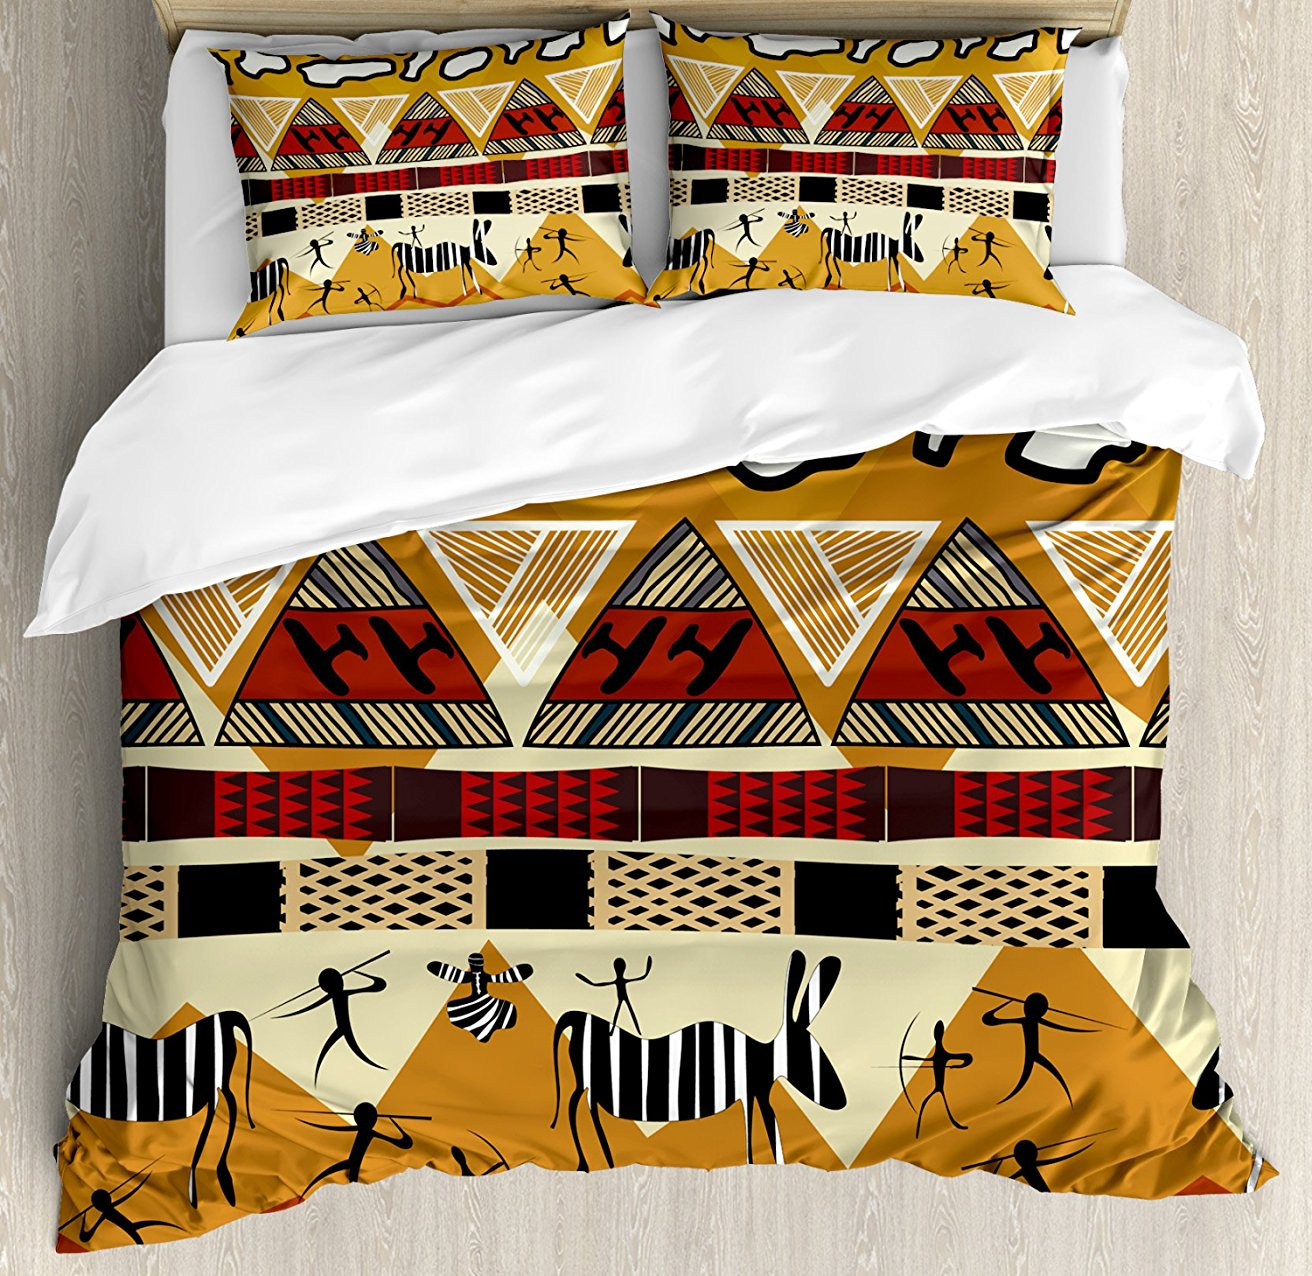 Native American Duvet Cover Set Pattern With Indigenous Cultural Elements Teepees Wolfs And Arrows Tribal 4 Piece Bedding Set Bedding Home Textile